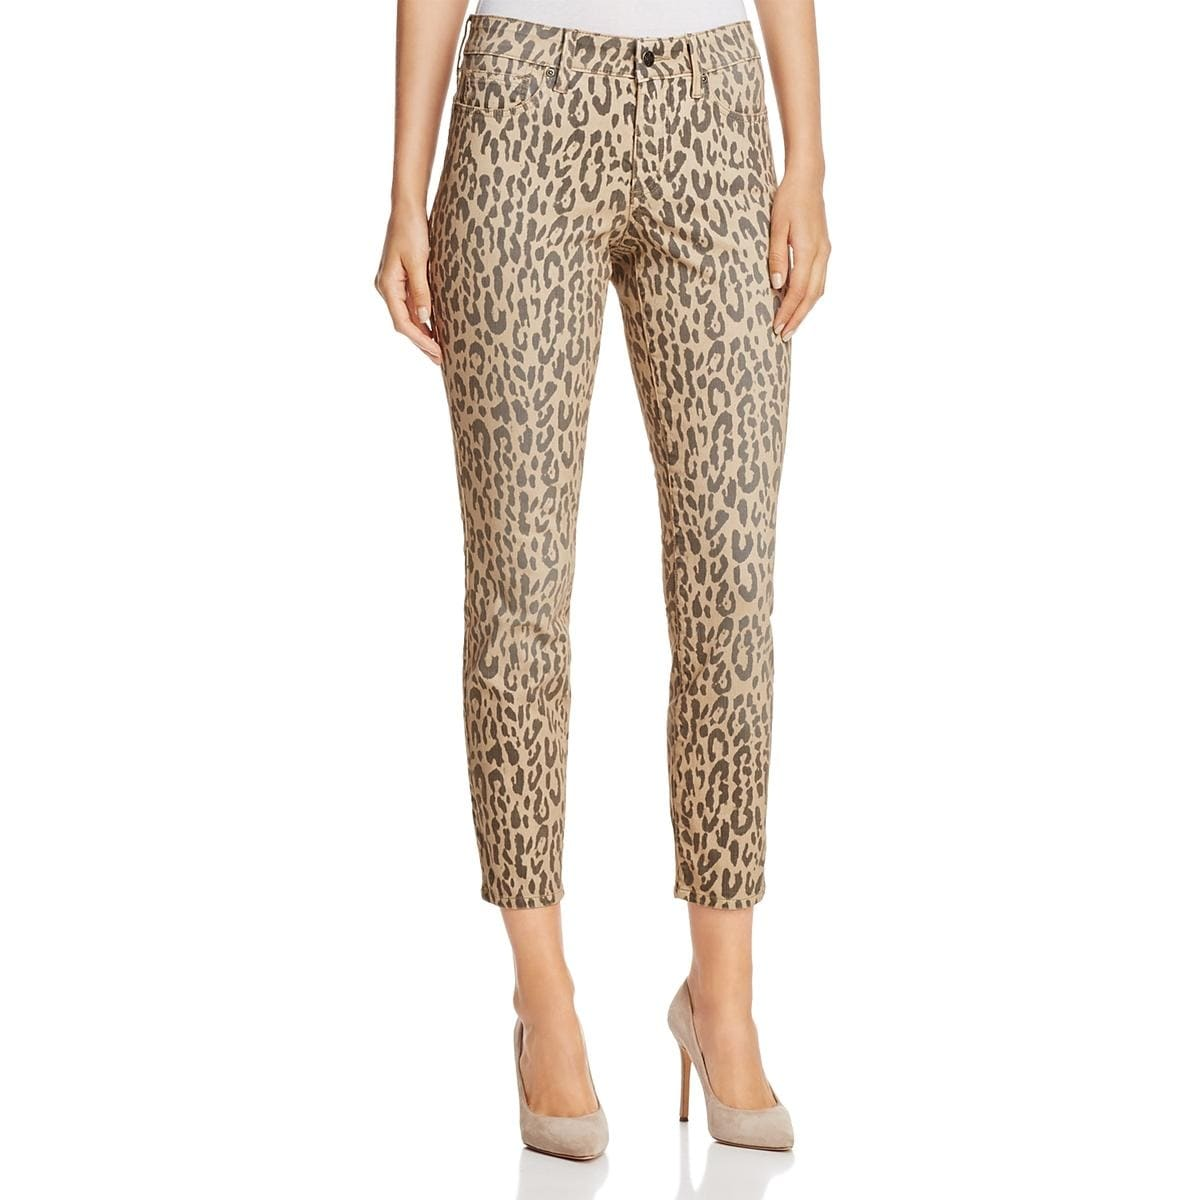 495d51191107a5 Shop NYDJ Womens Alina Ankle Jeans Denim Animal Print - Free Shipping On  Orders Over $45 - Overstock - 27784278